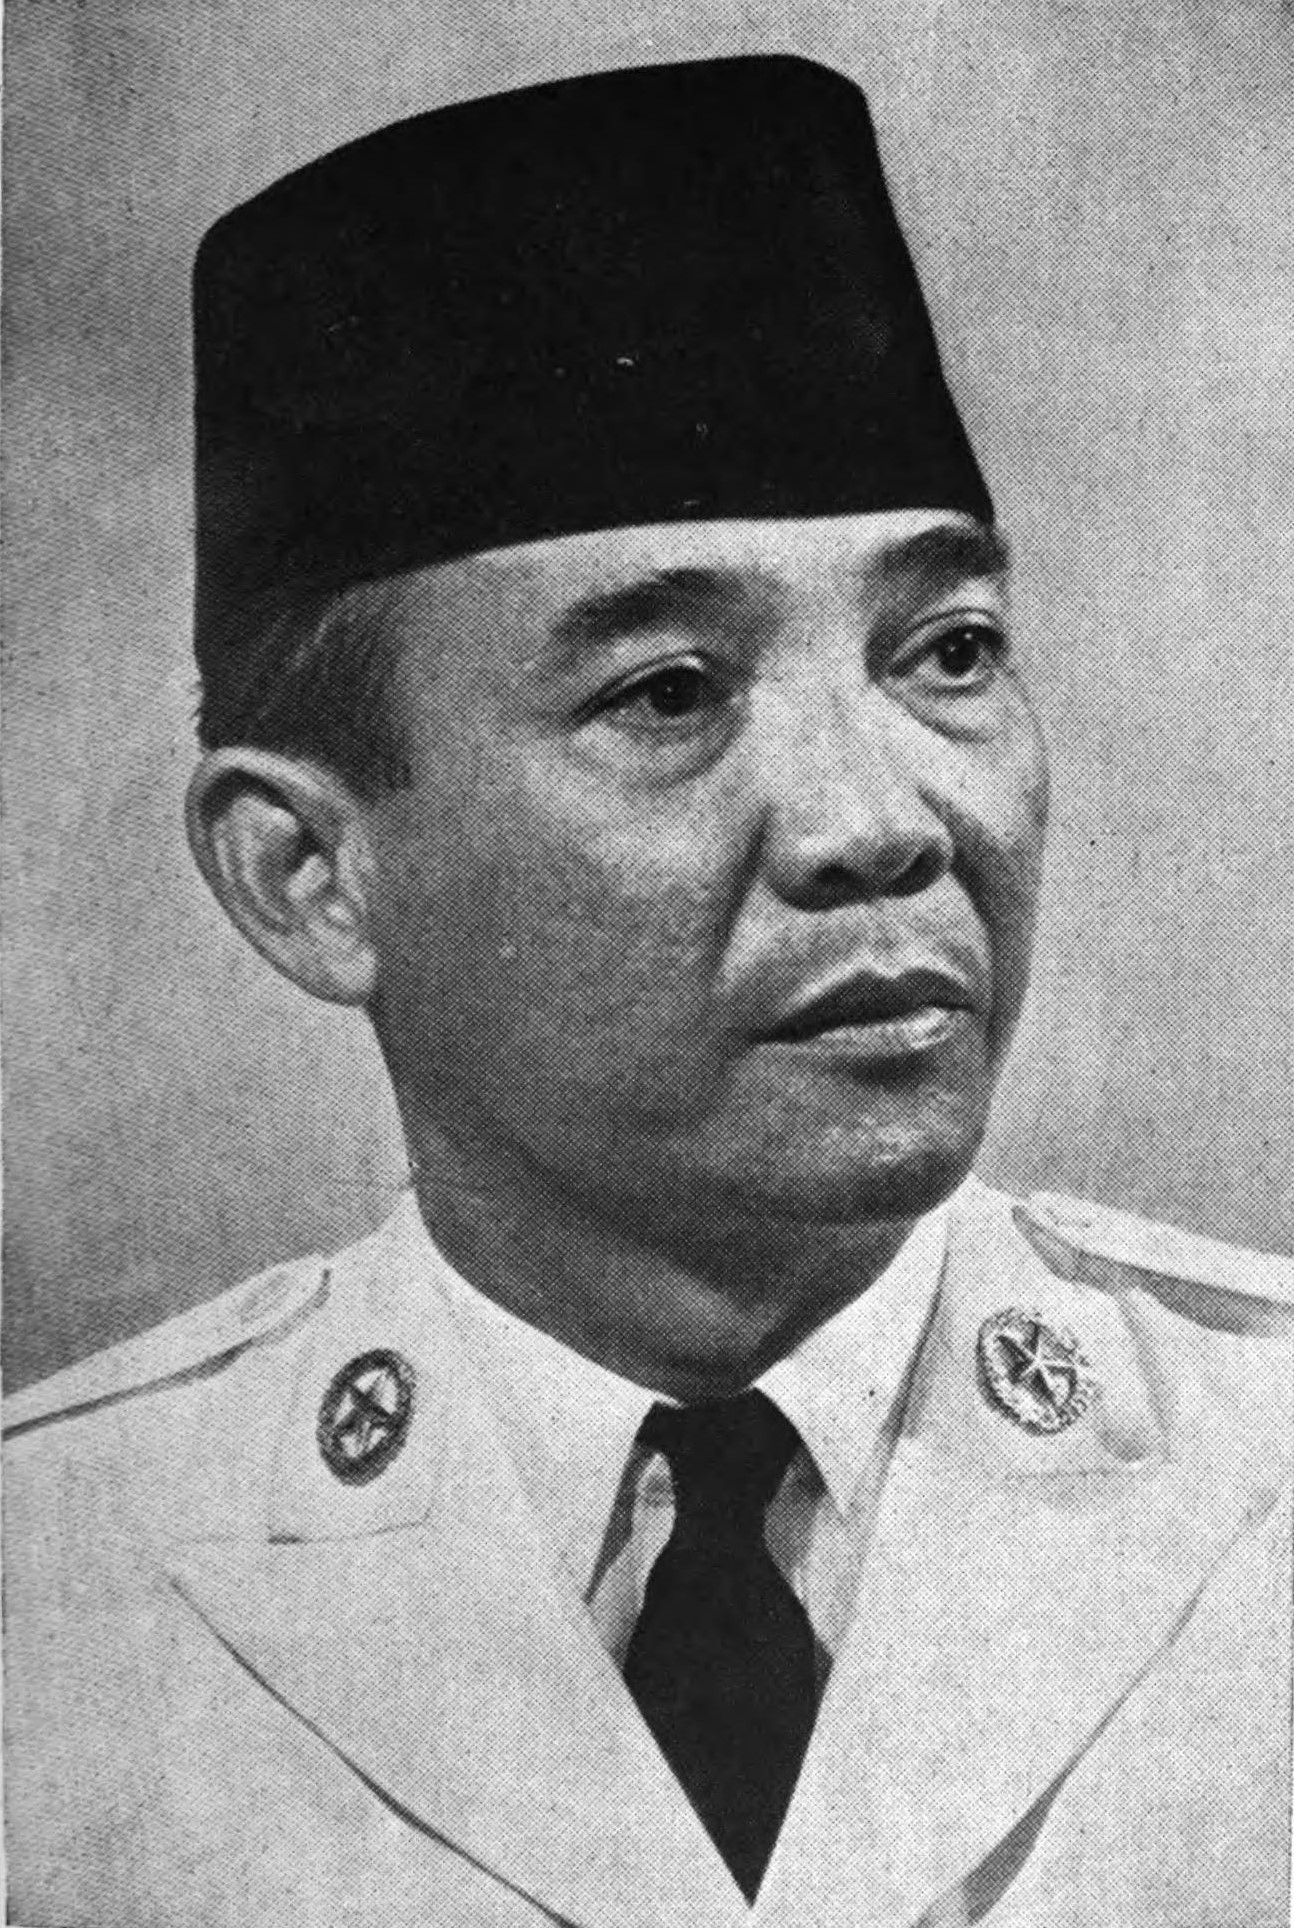 A black-and-white three-quarters view of Sukarno's face